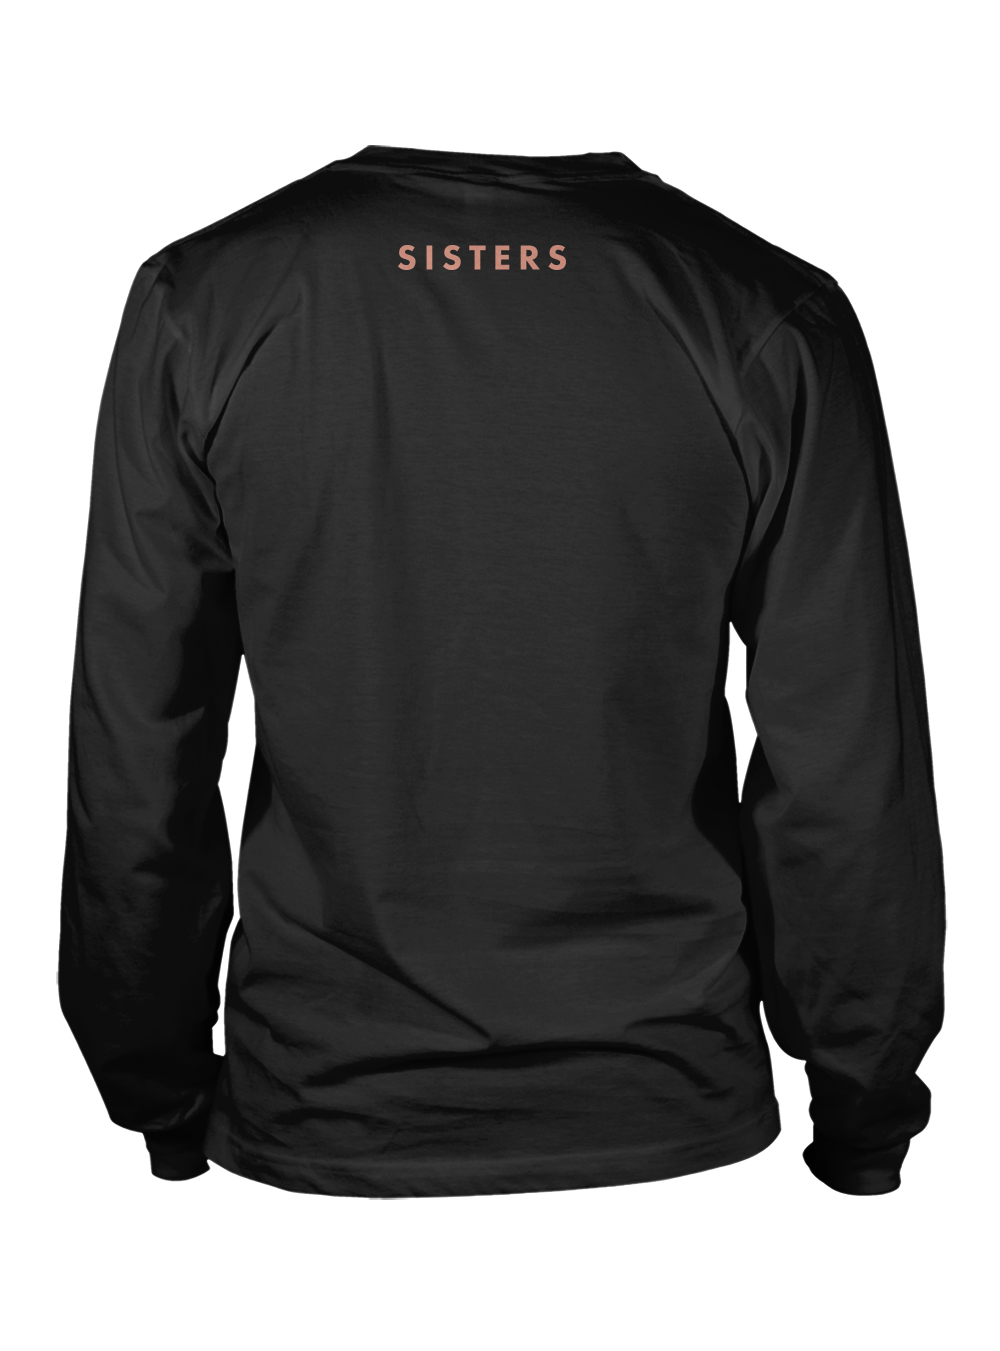 Long Sleeve Shirt Mock Up - Back (JPG)